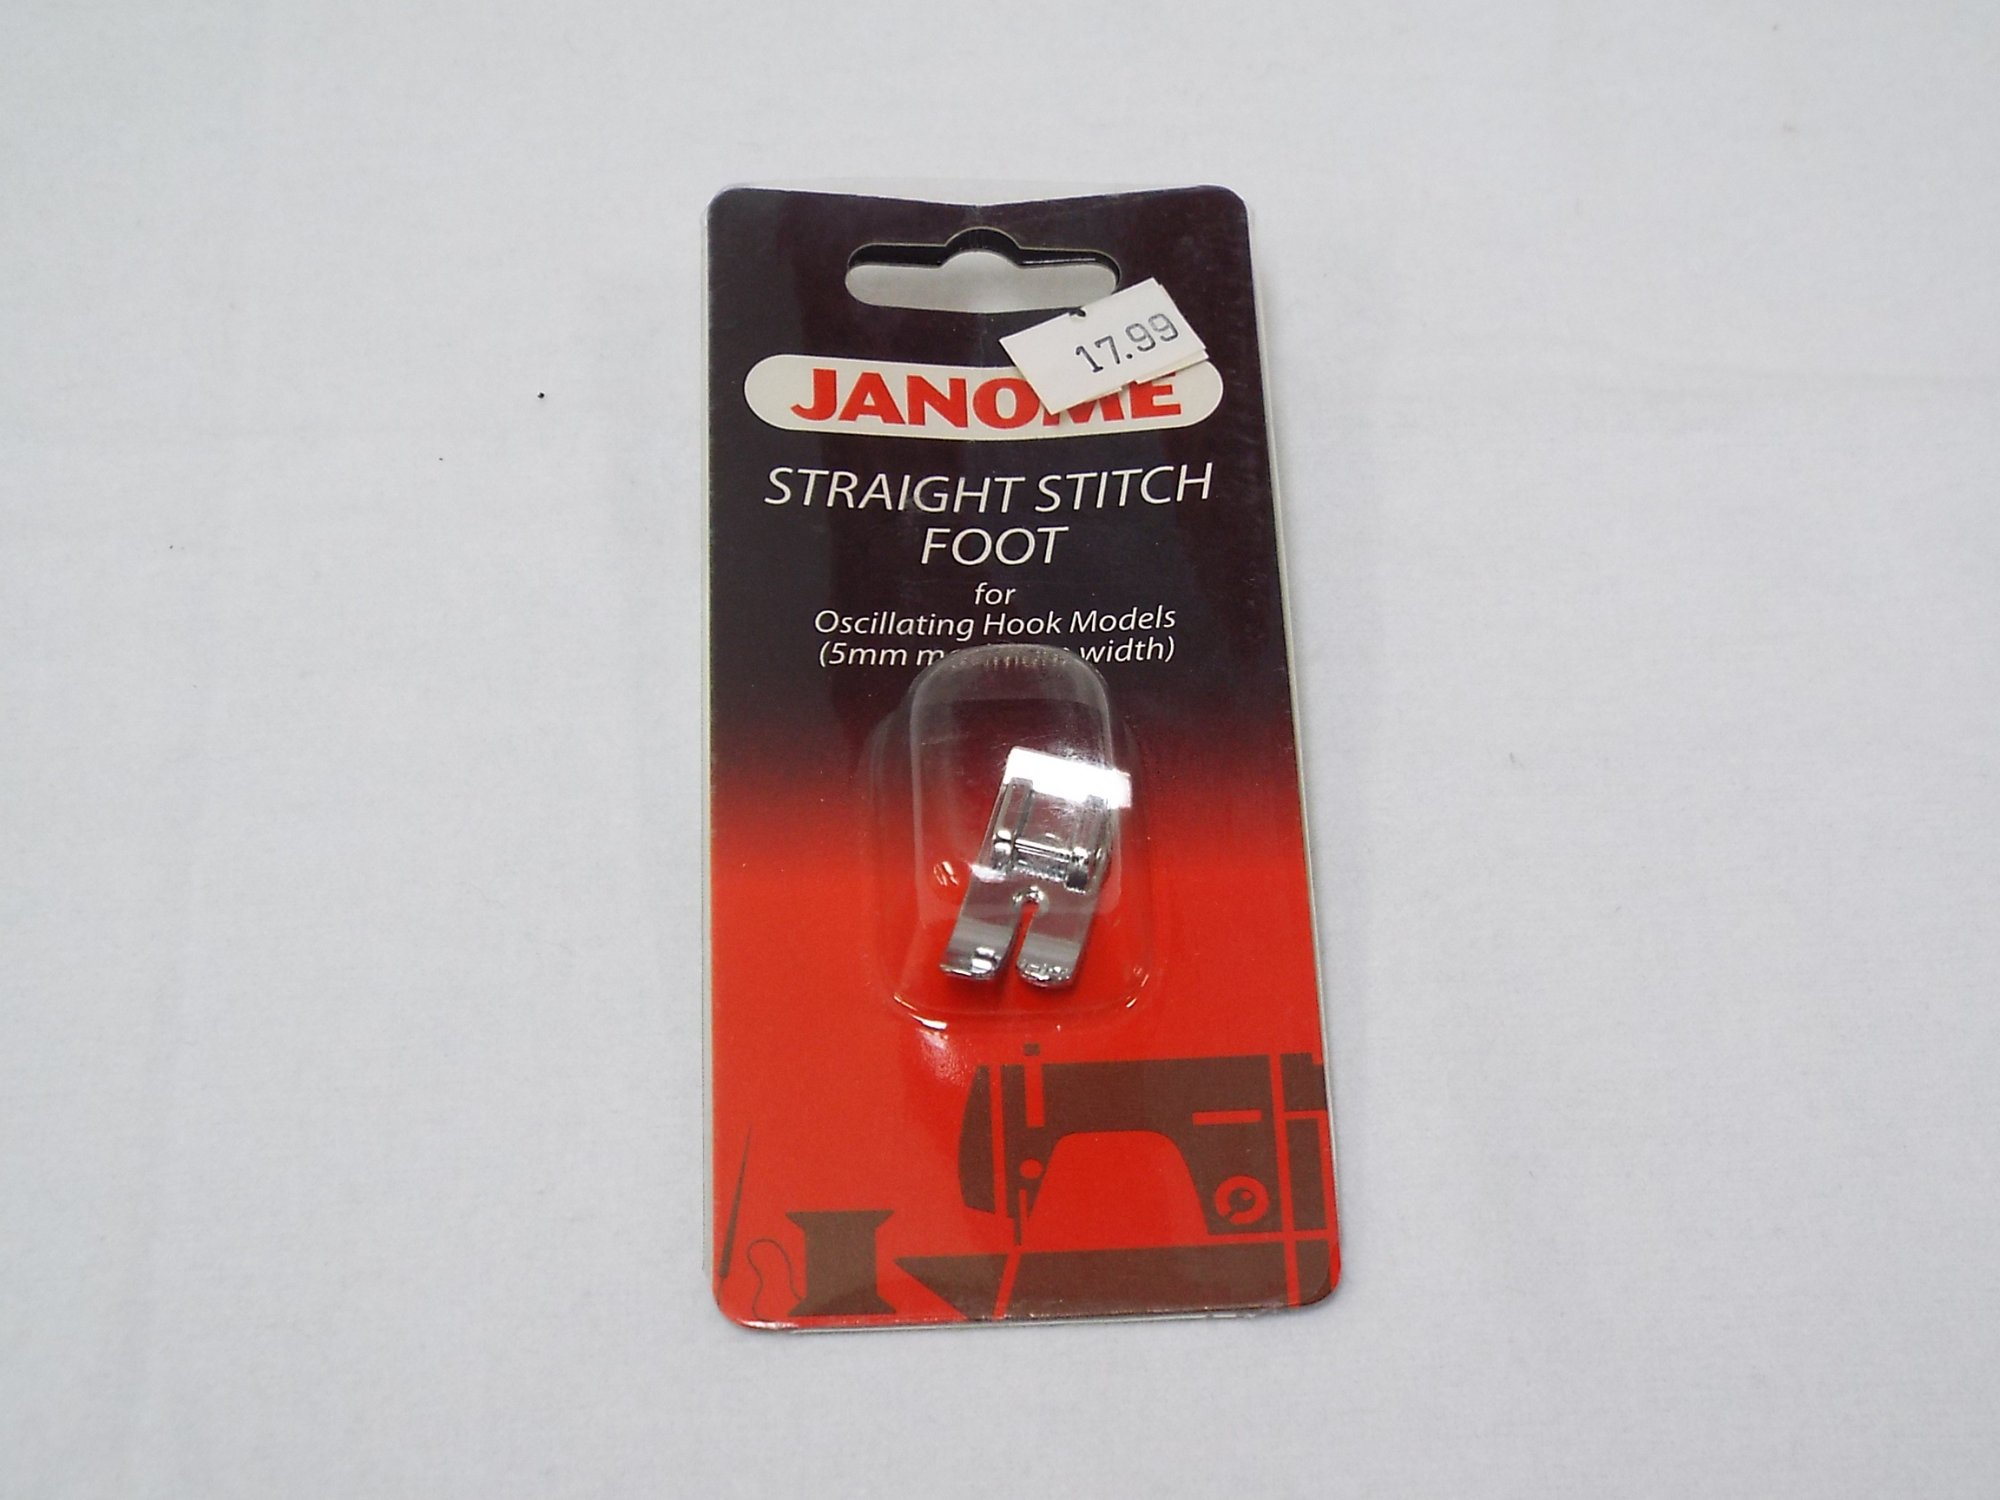 Janome 5 mm Straight Stitch Foot